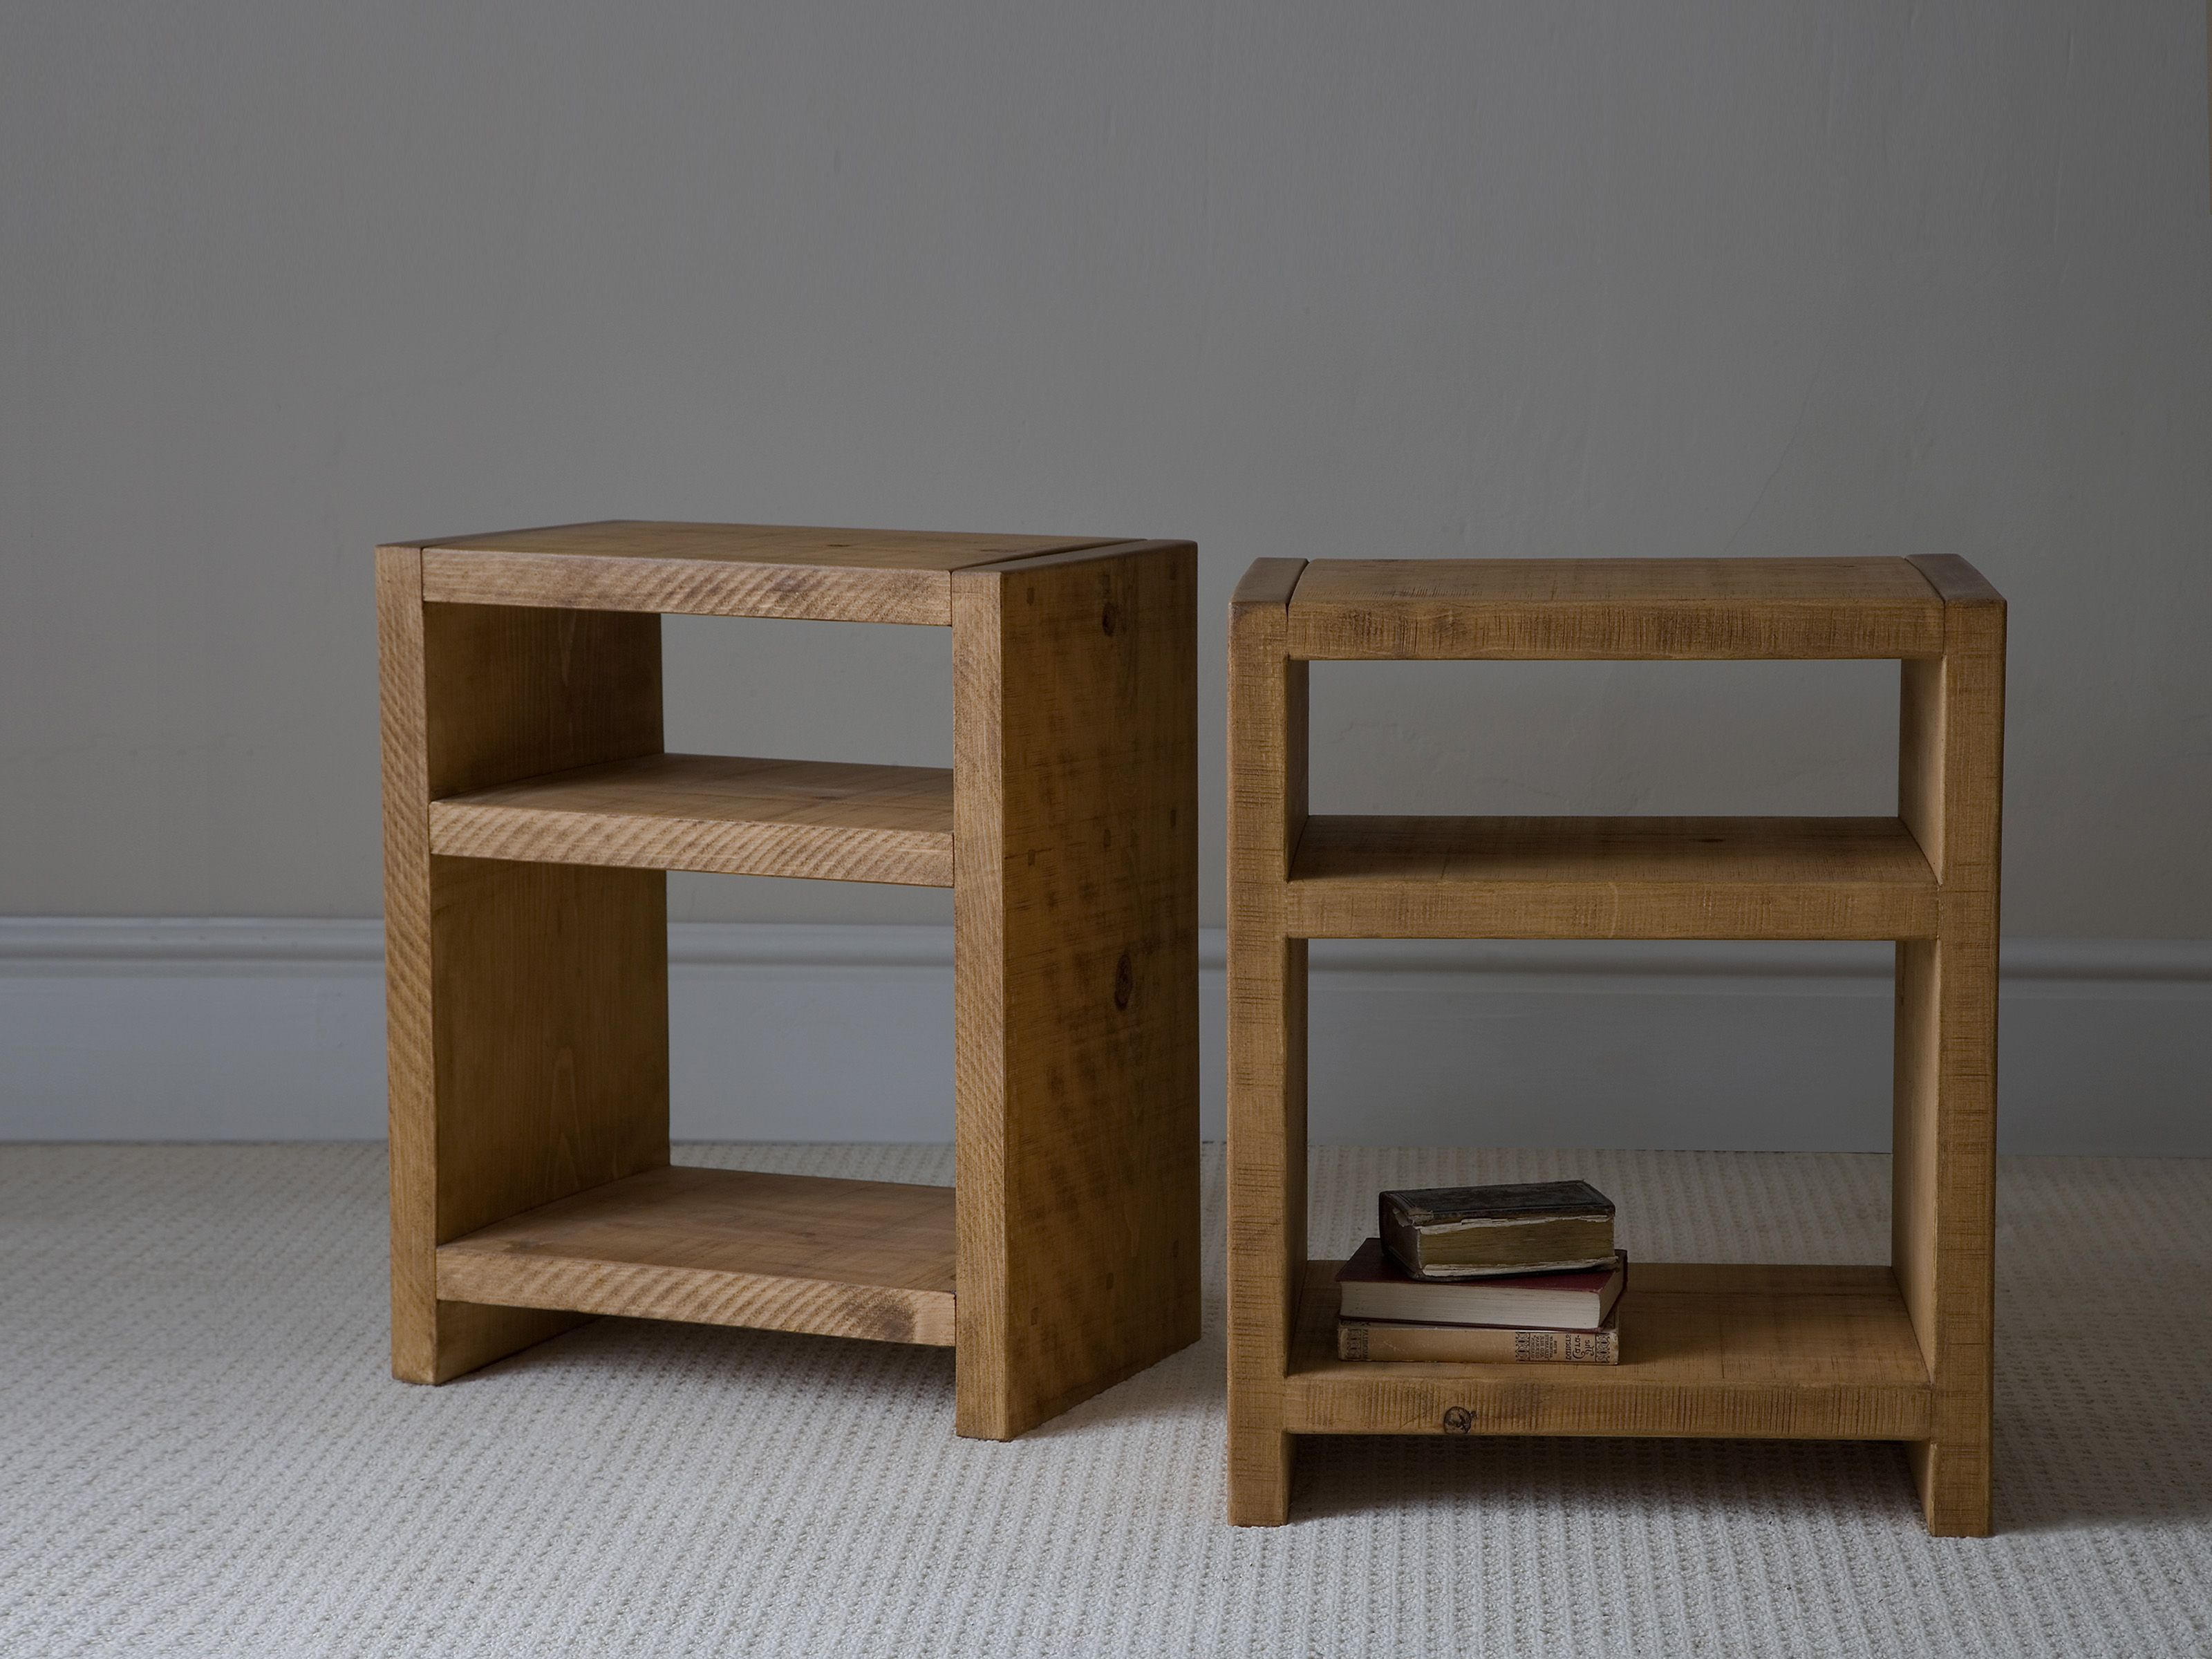 Indigo Furniture Going To Make Each Kid A Bedside Table To Use But Doing It Myself Diy